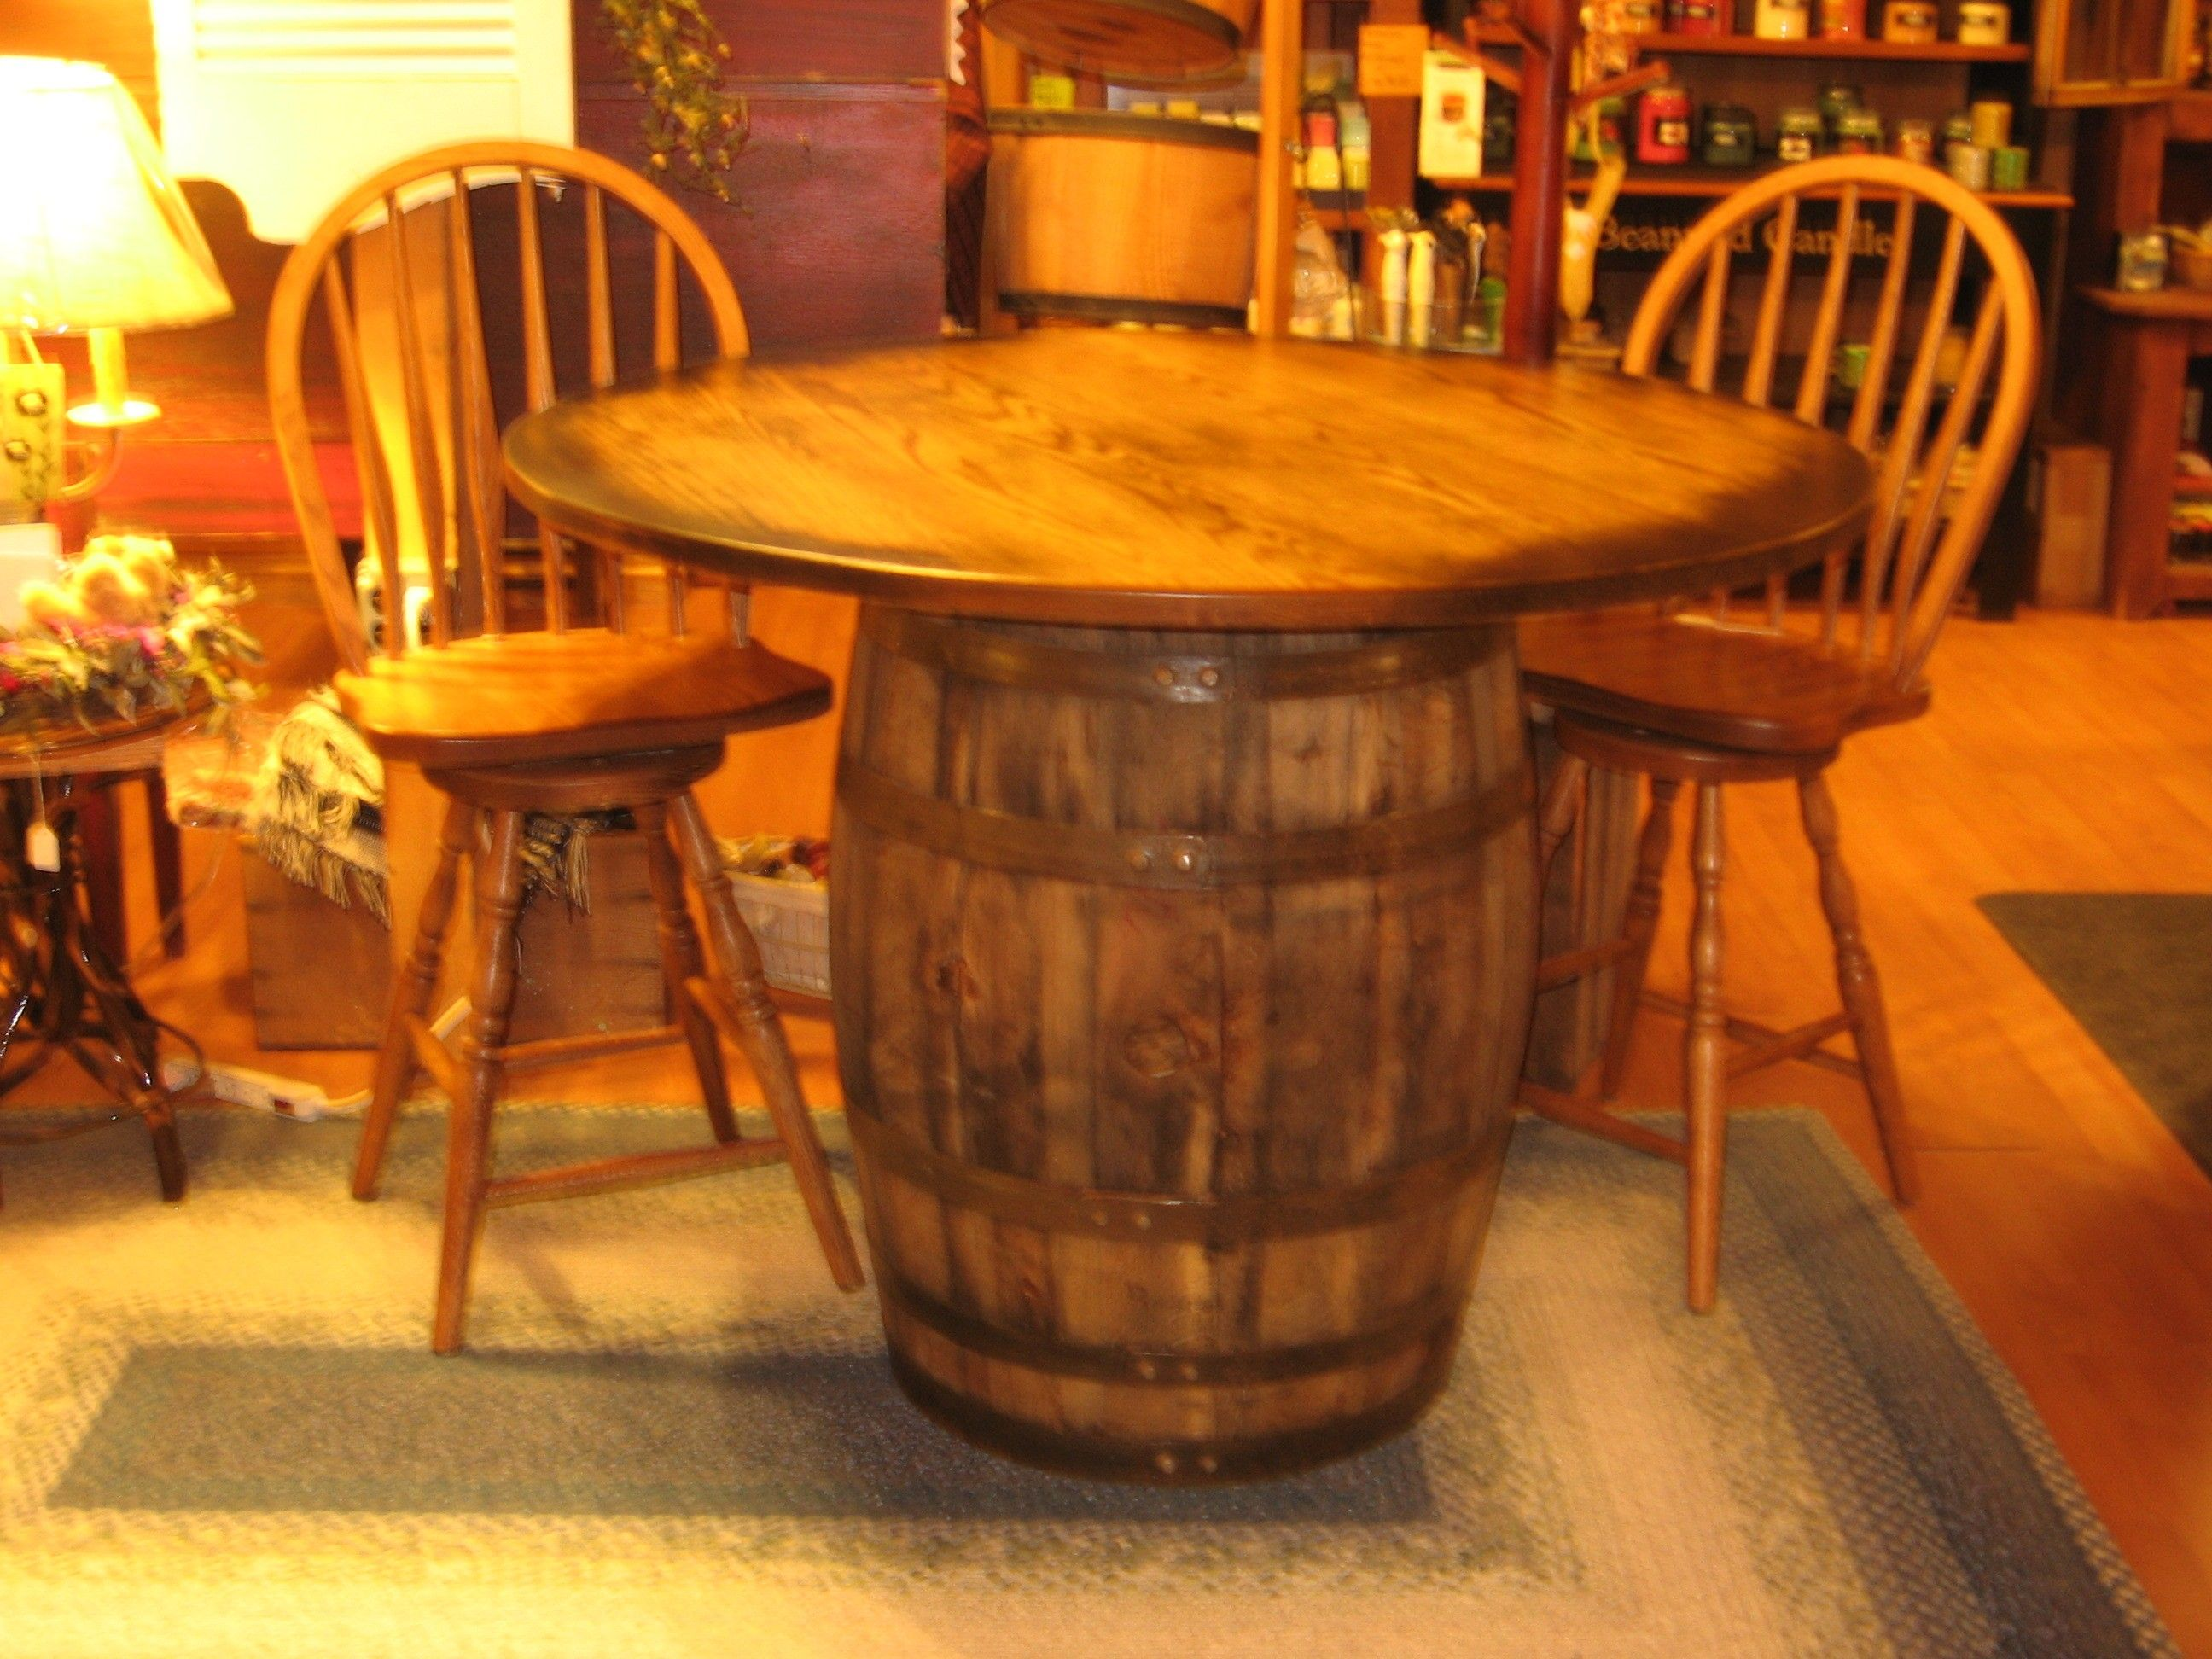 whiskey barrel pub table and chairs crate dining wine desk decor